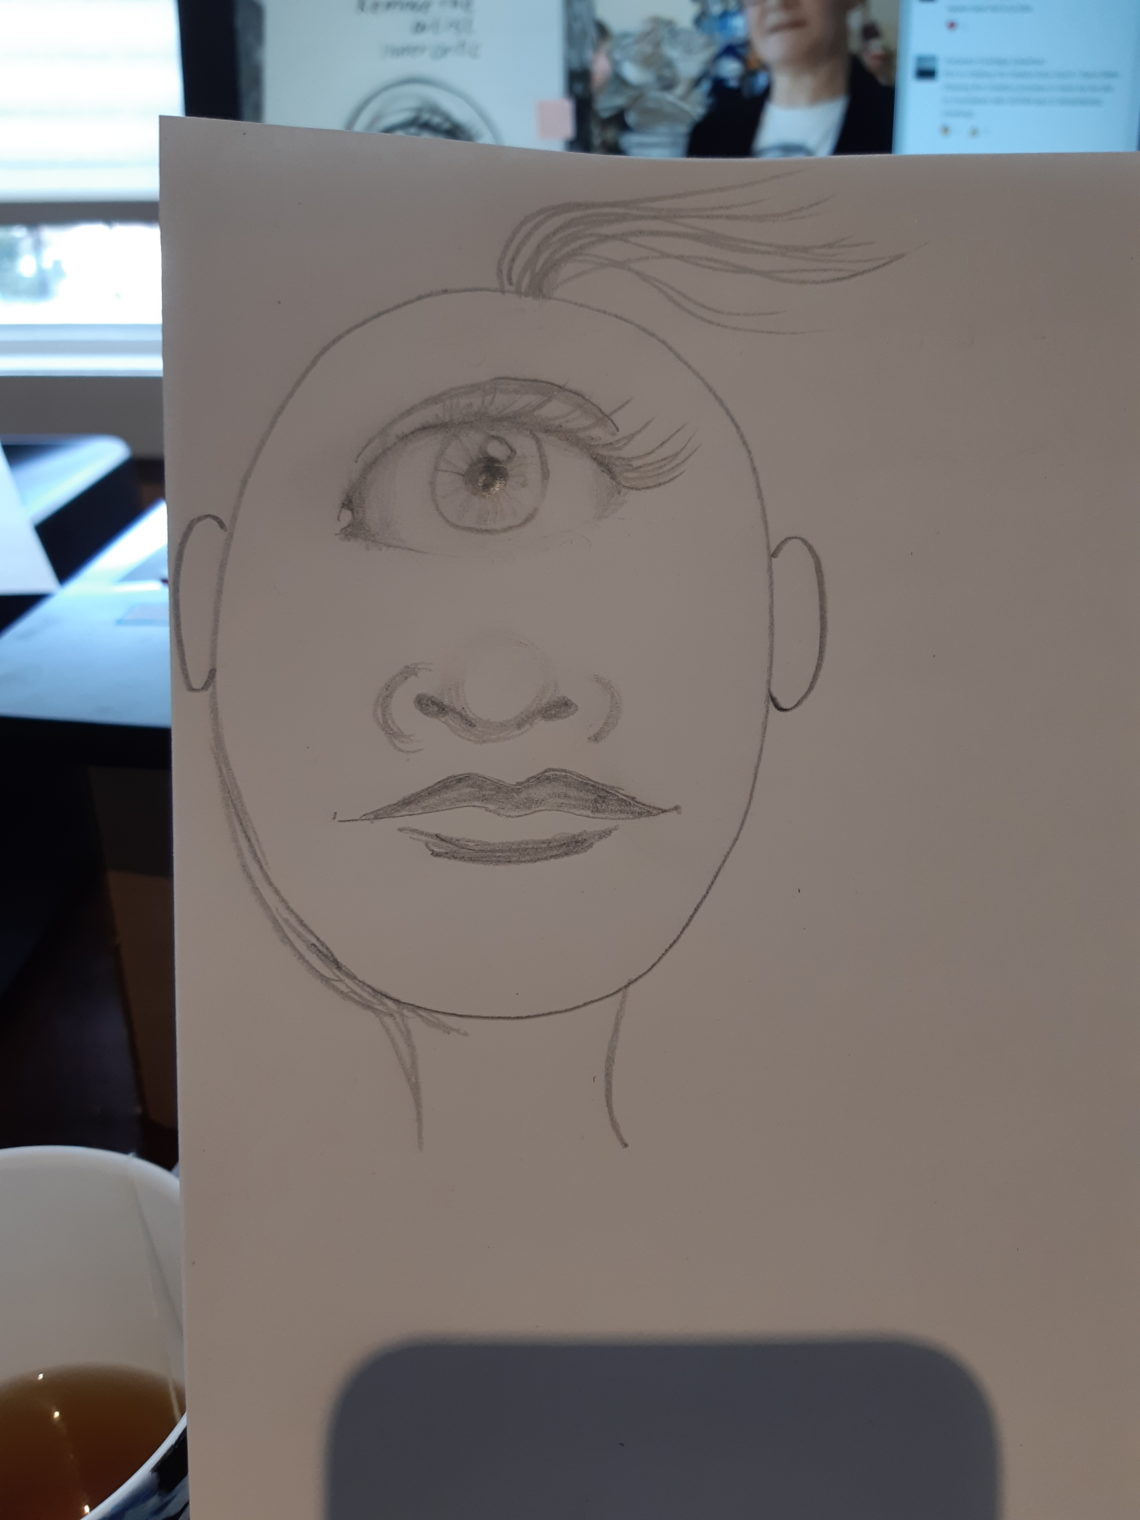 Cyclops drawing to practice eye, nose, mouth drawing